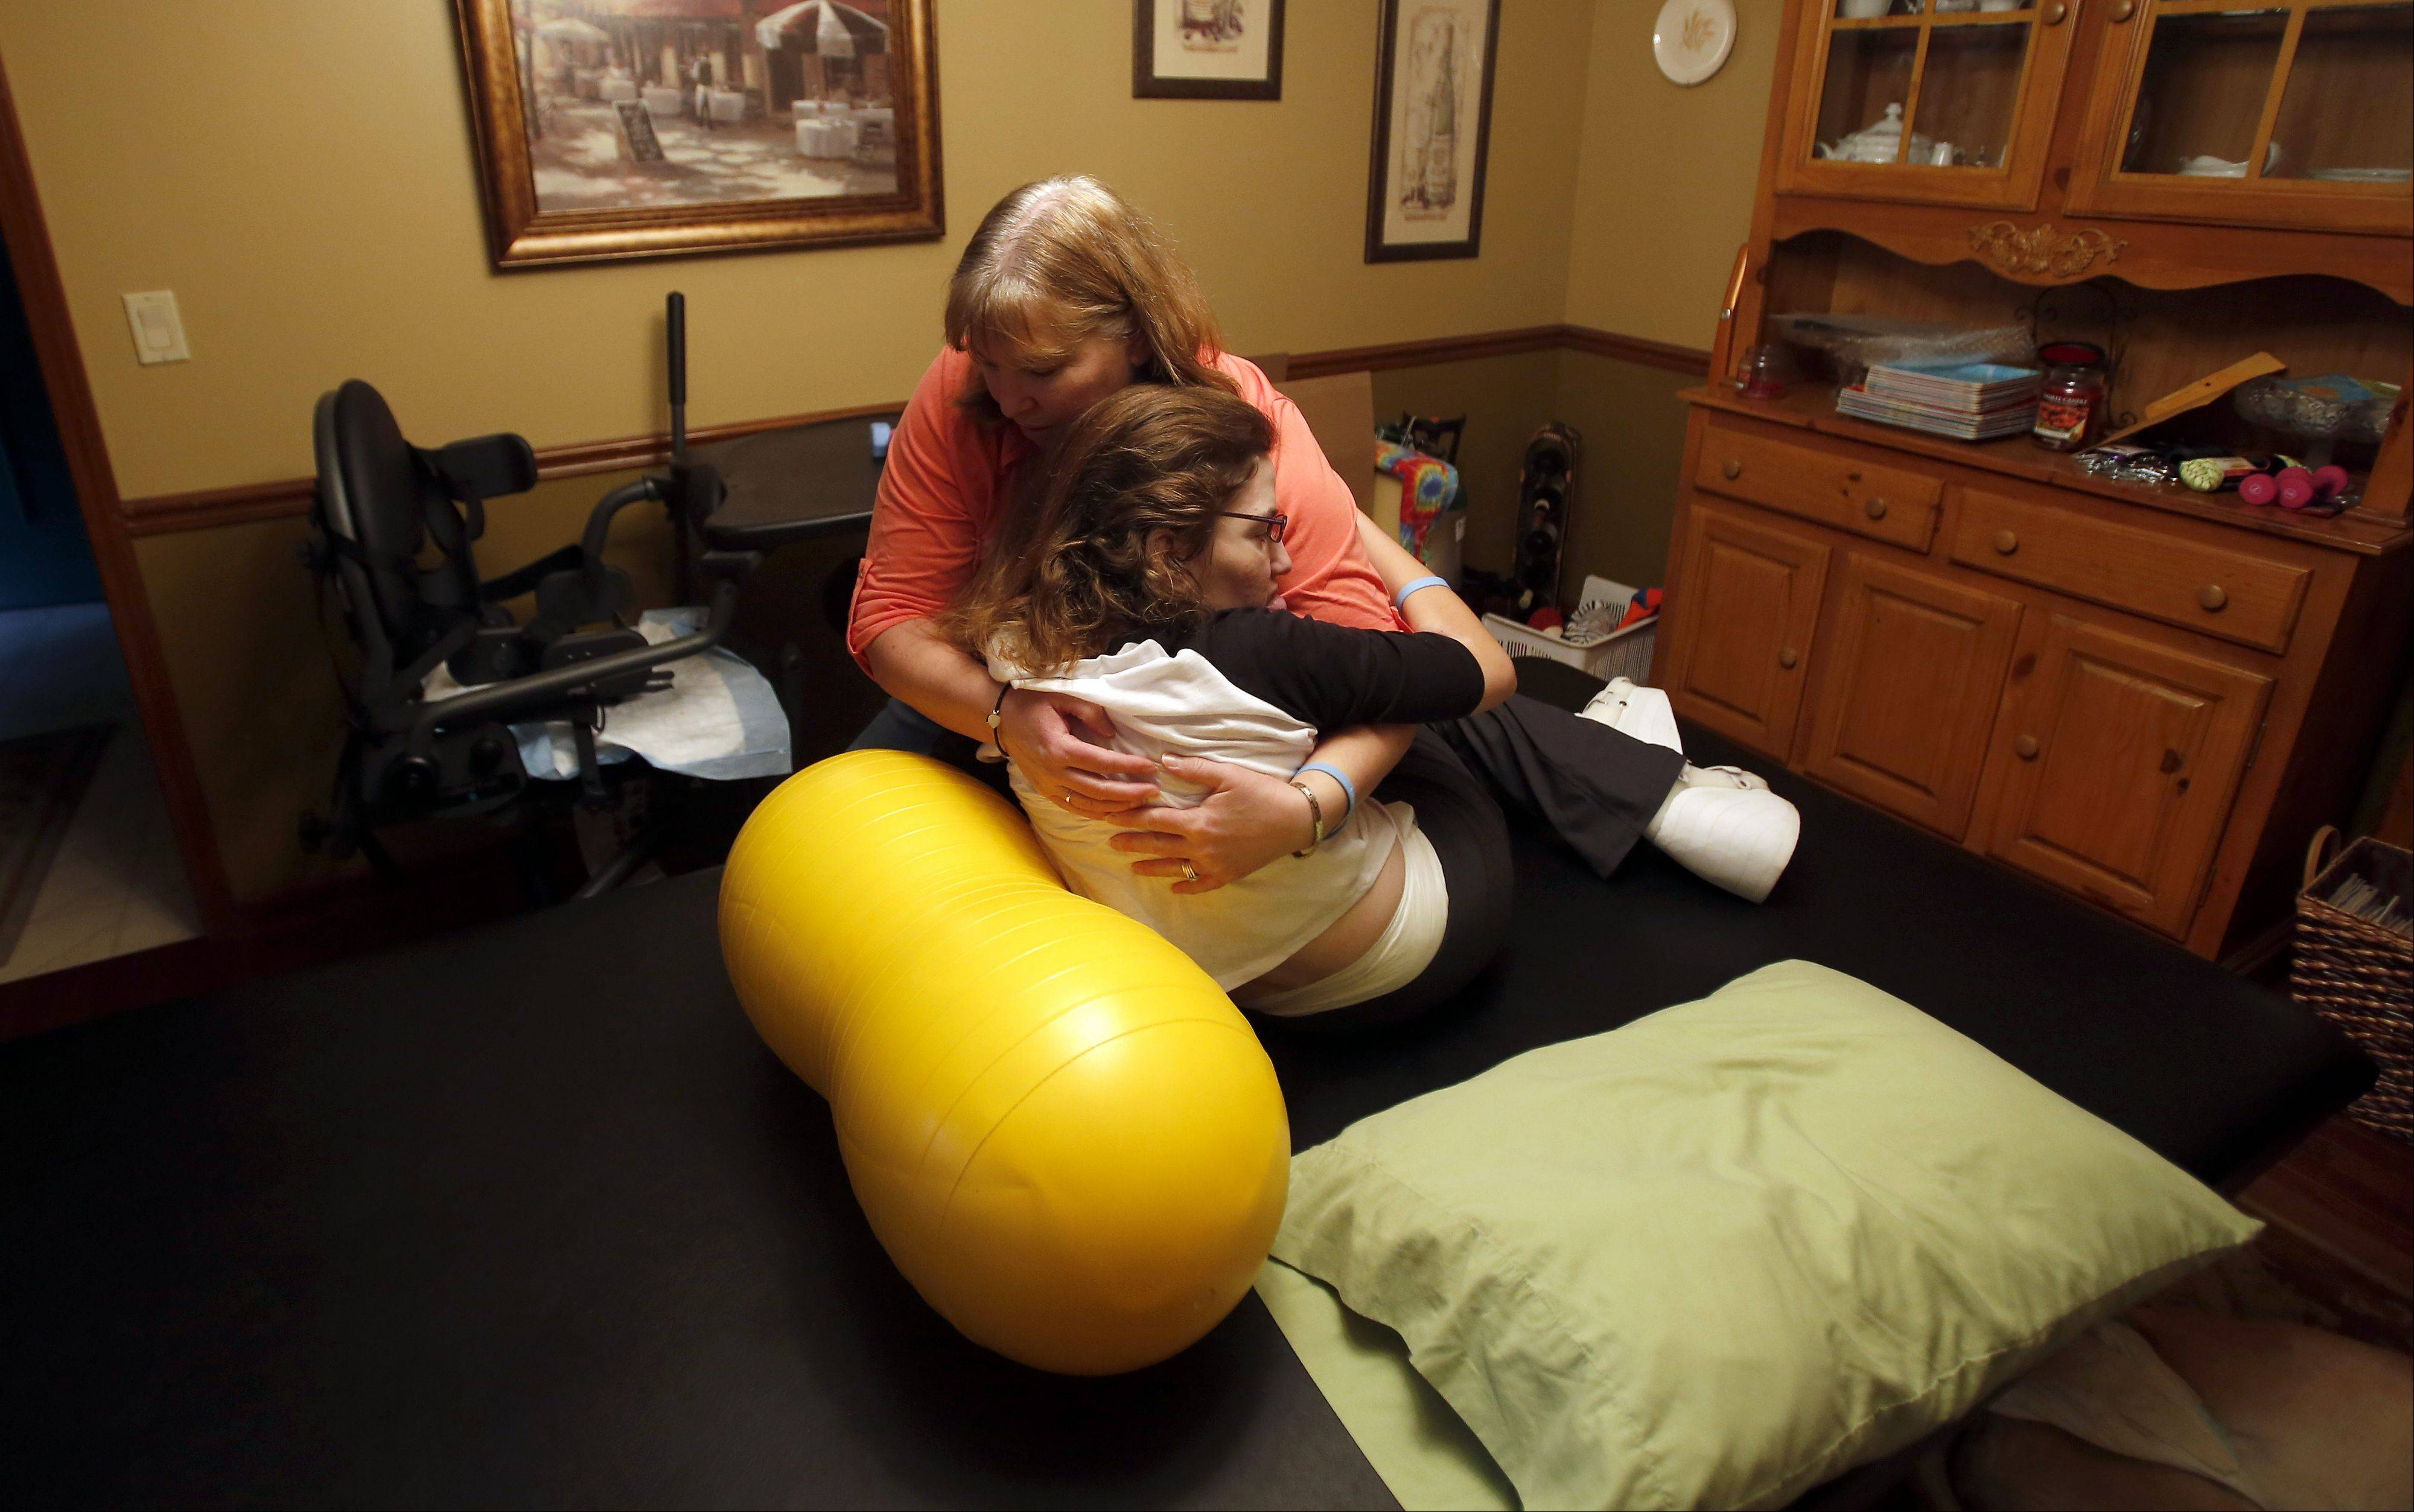 Alex Frerichs, 24, of Elgin gets some help from mom Annette as she does physical therapy in the family's dining room.